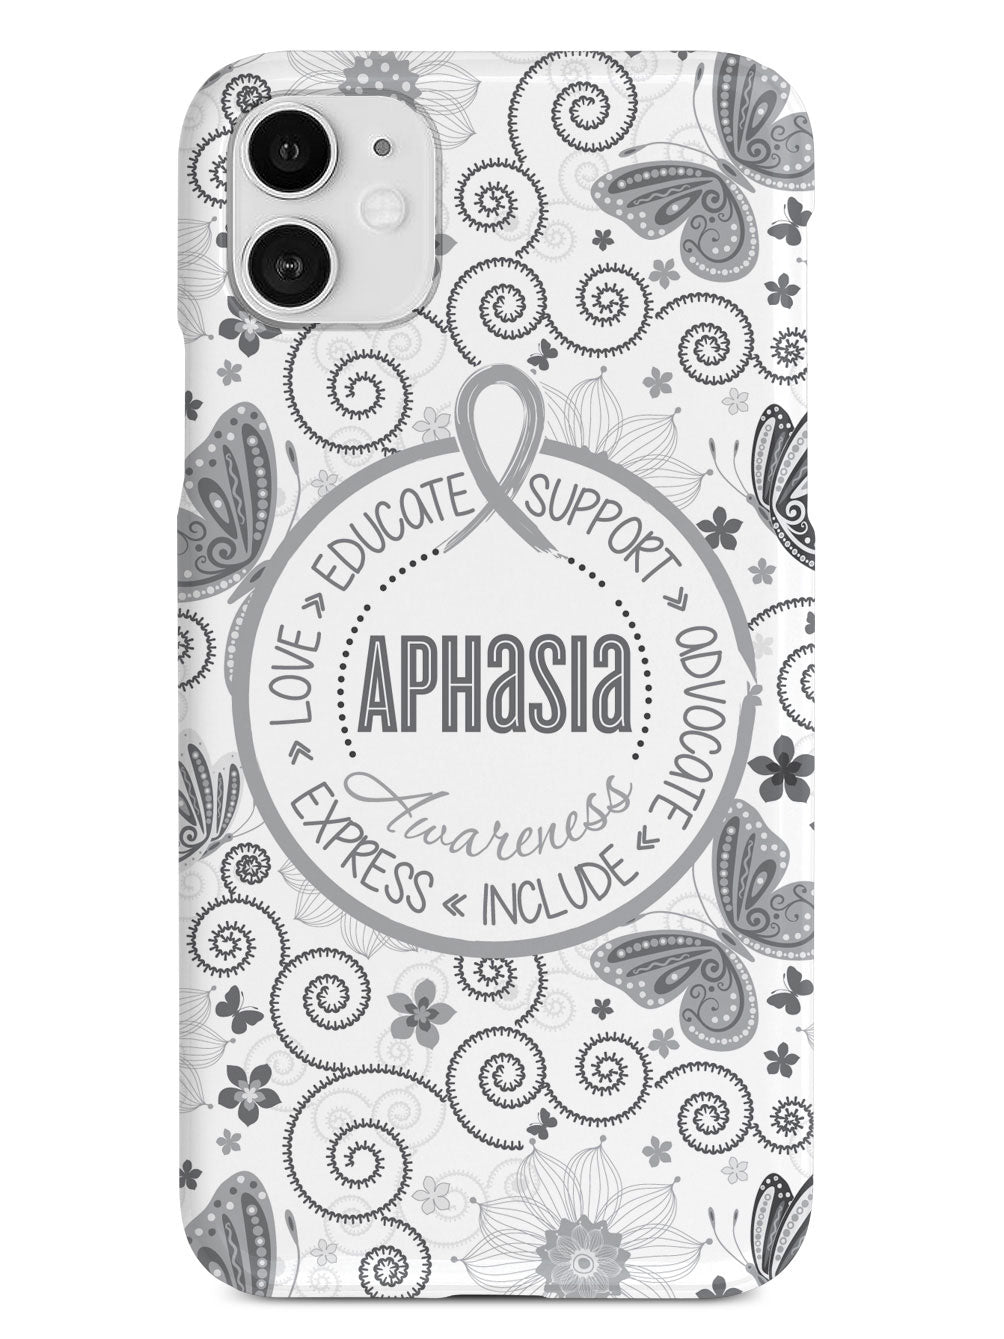 Aphasia Awareness - Butterfly Pattern Case